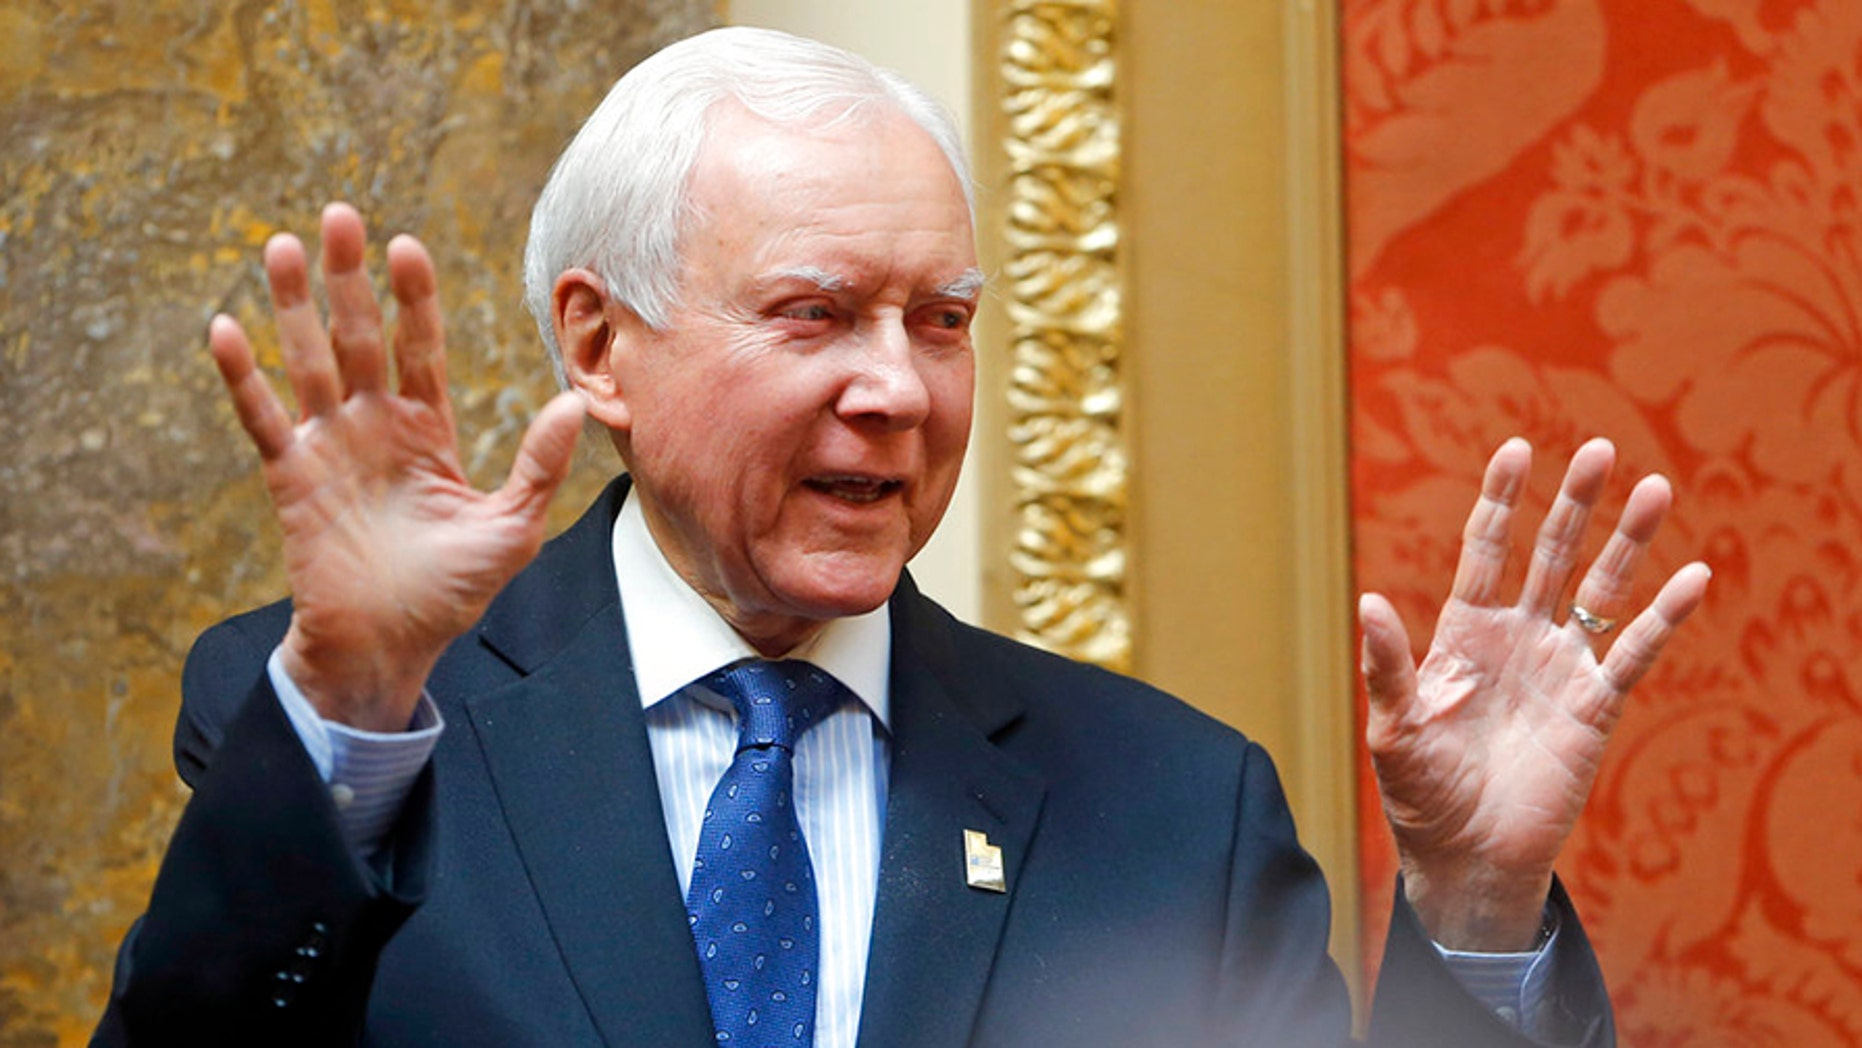 Sen. Orrin Hatch is retiring after more than 40 years in Washington.